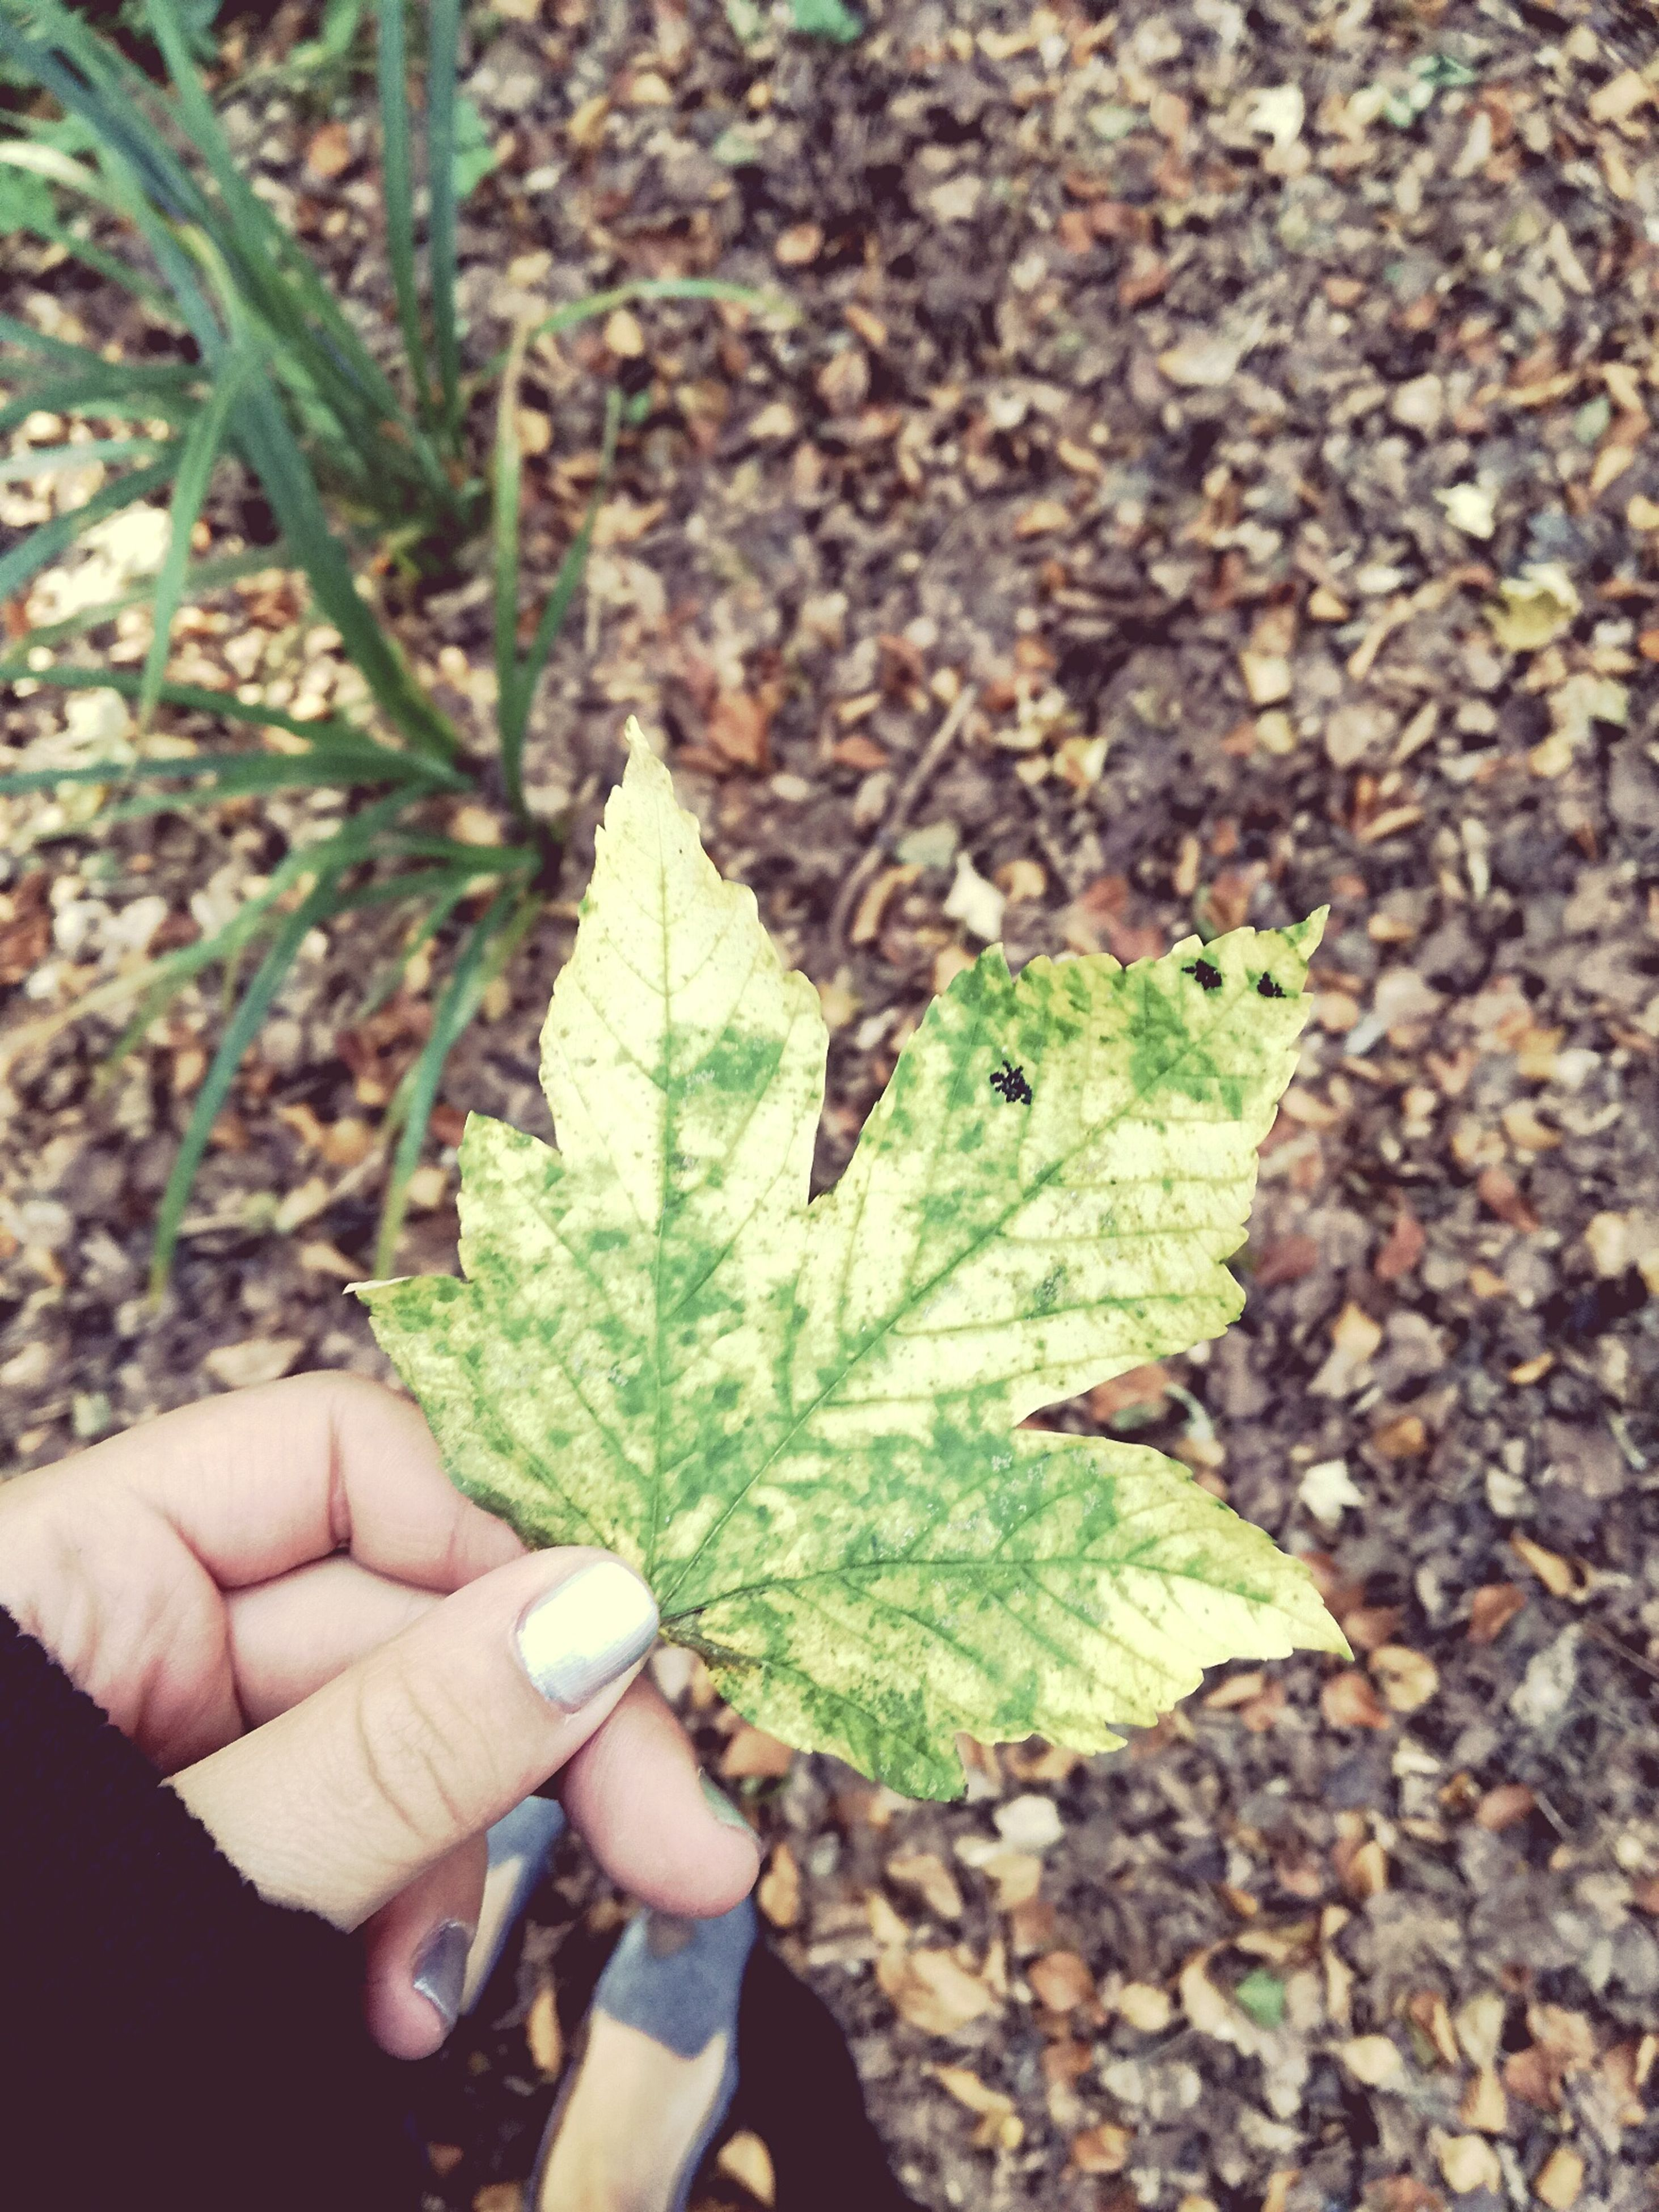 leaf, person, holding, close-up, leaf vein, green color, field, nature, fallen leaf, human finger, day, outdoors, personal perspective, tranquility, botany, focus on foreground, fragility, beauty in nature, freshness, green, contrasts